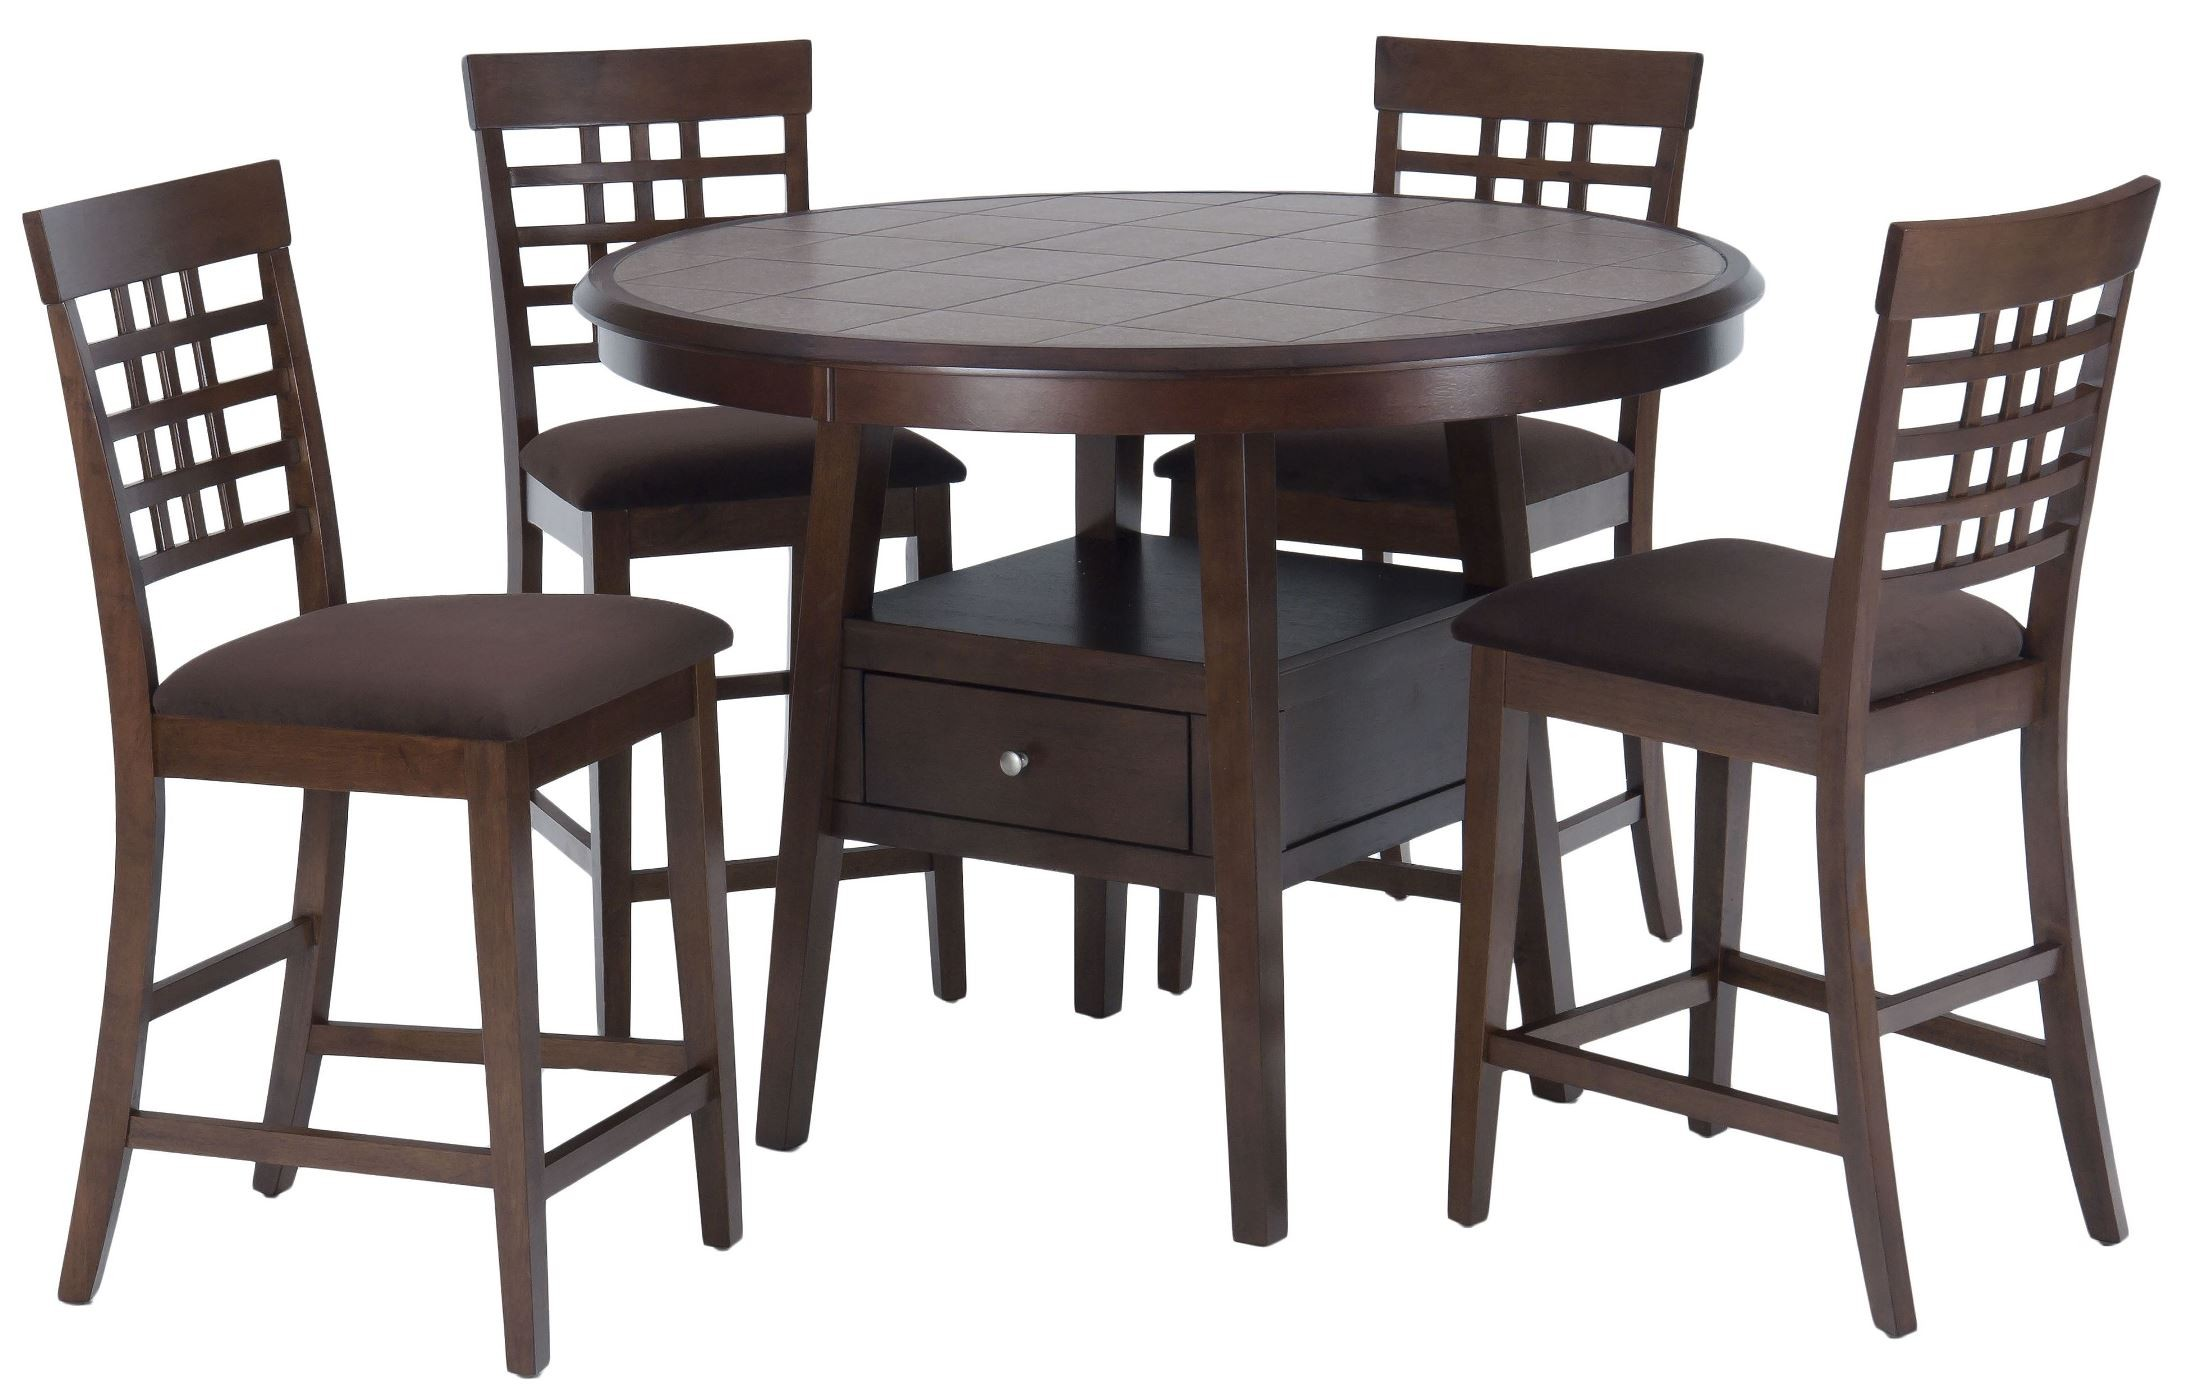 Caleb brown 48 round counter height dining room set 976 for Dining room tables 48 round